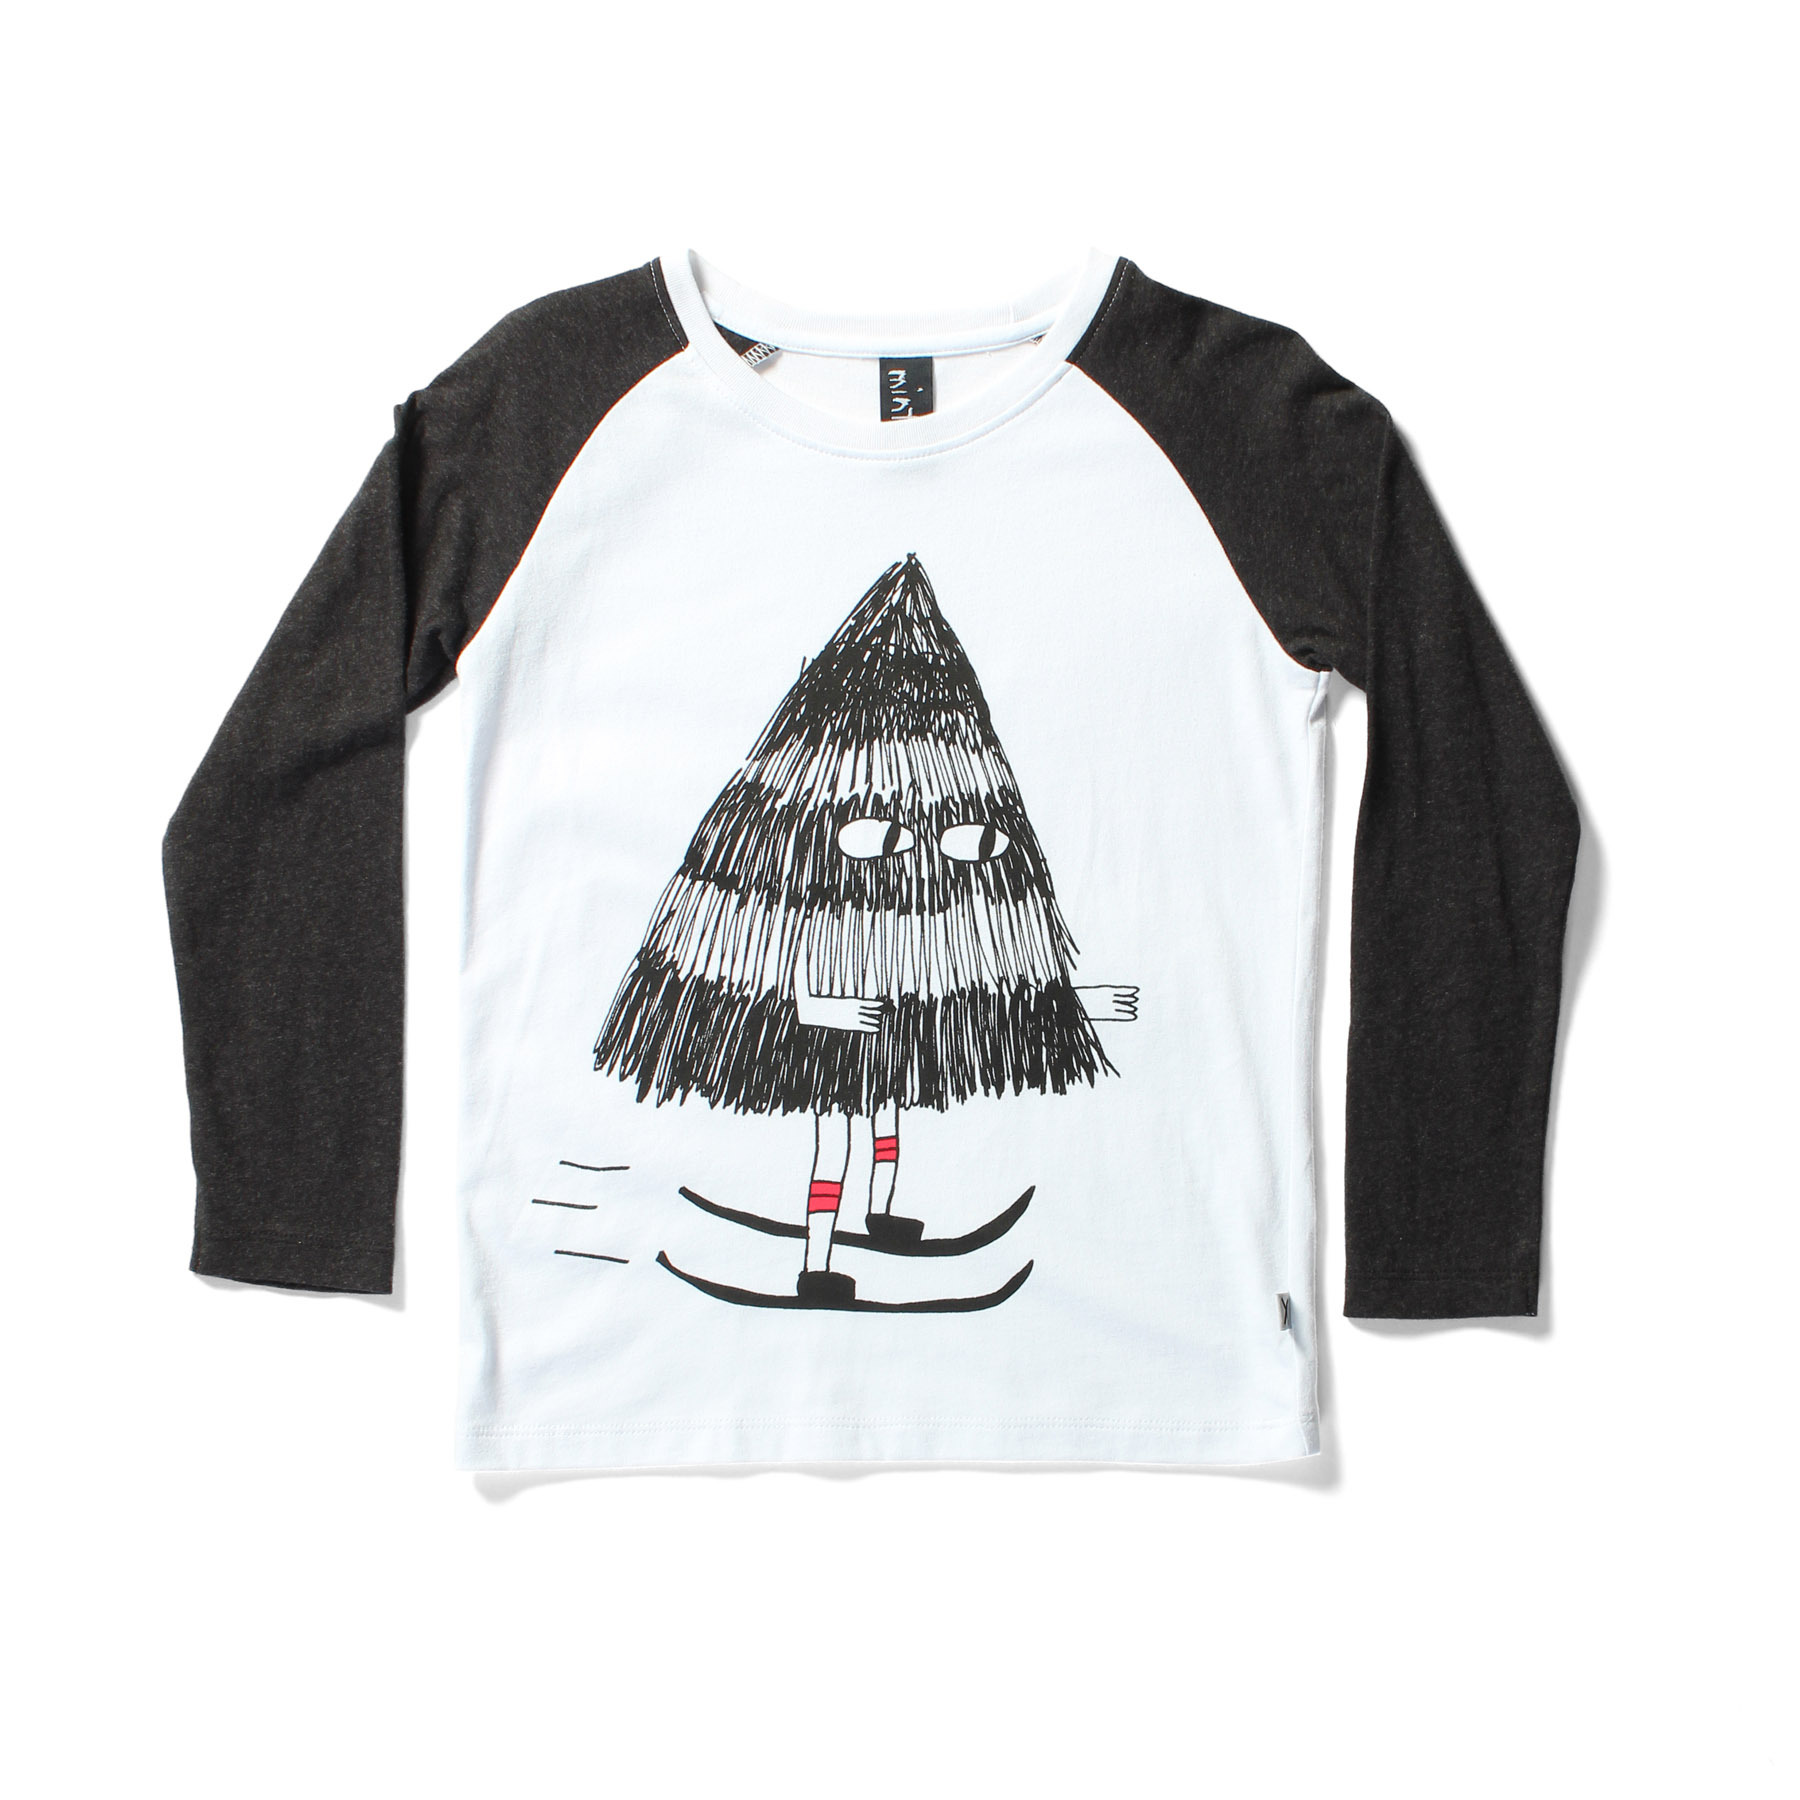 LS RAGLAN TEE - tree skiier